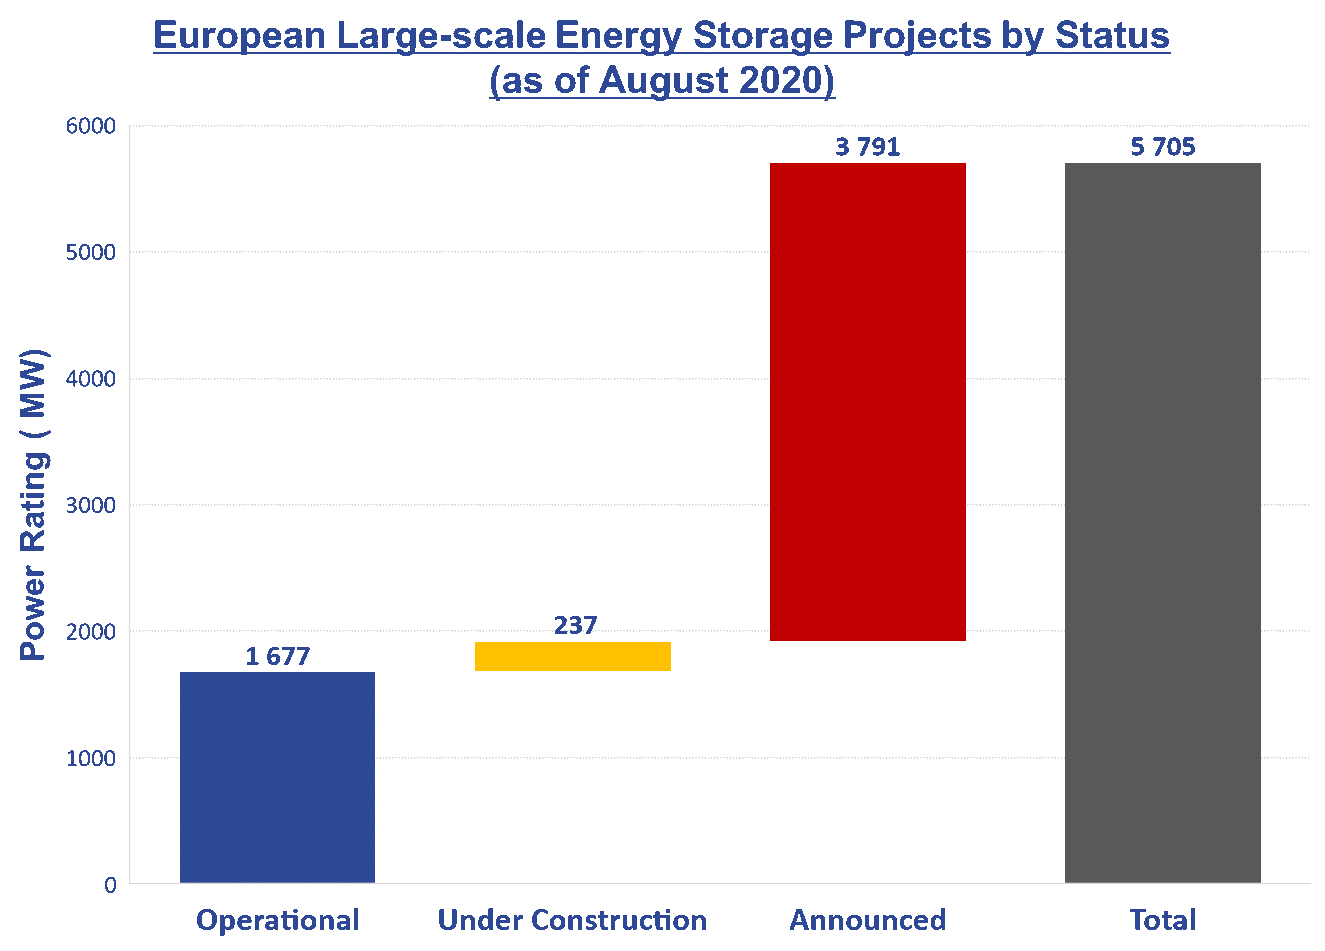 Figure 1. European large-scale energy storage projects by status as of August 2020